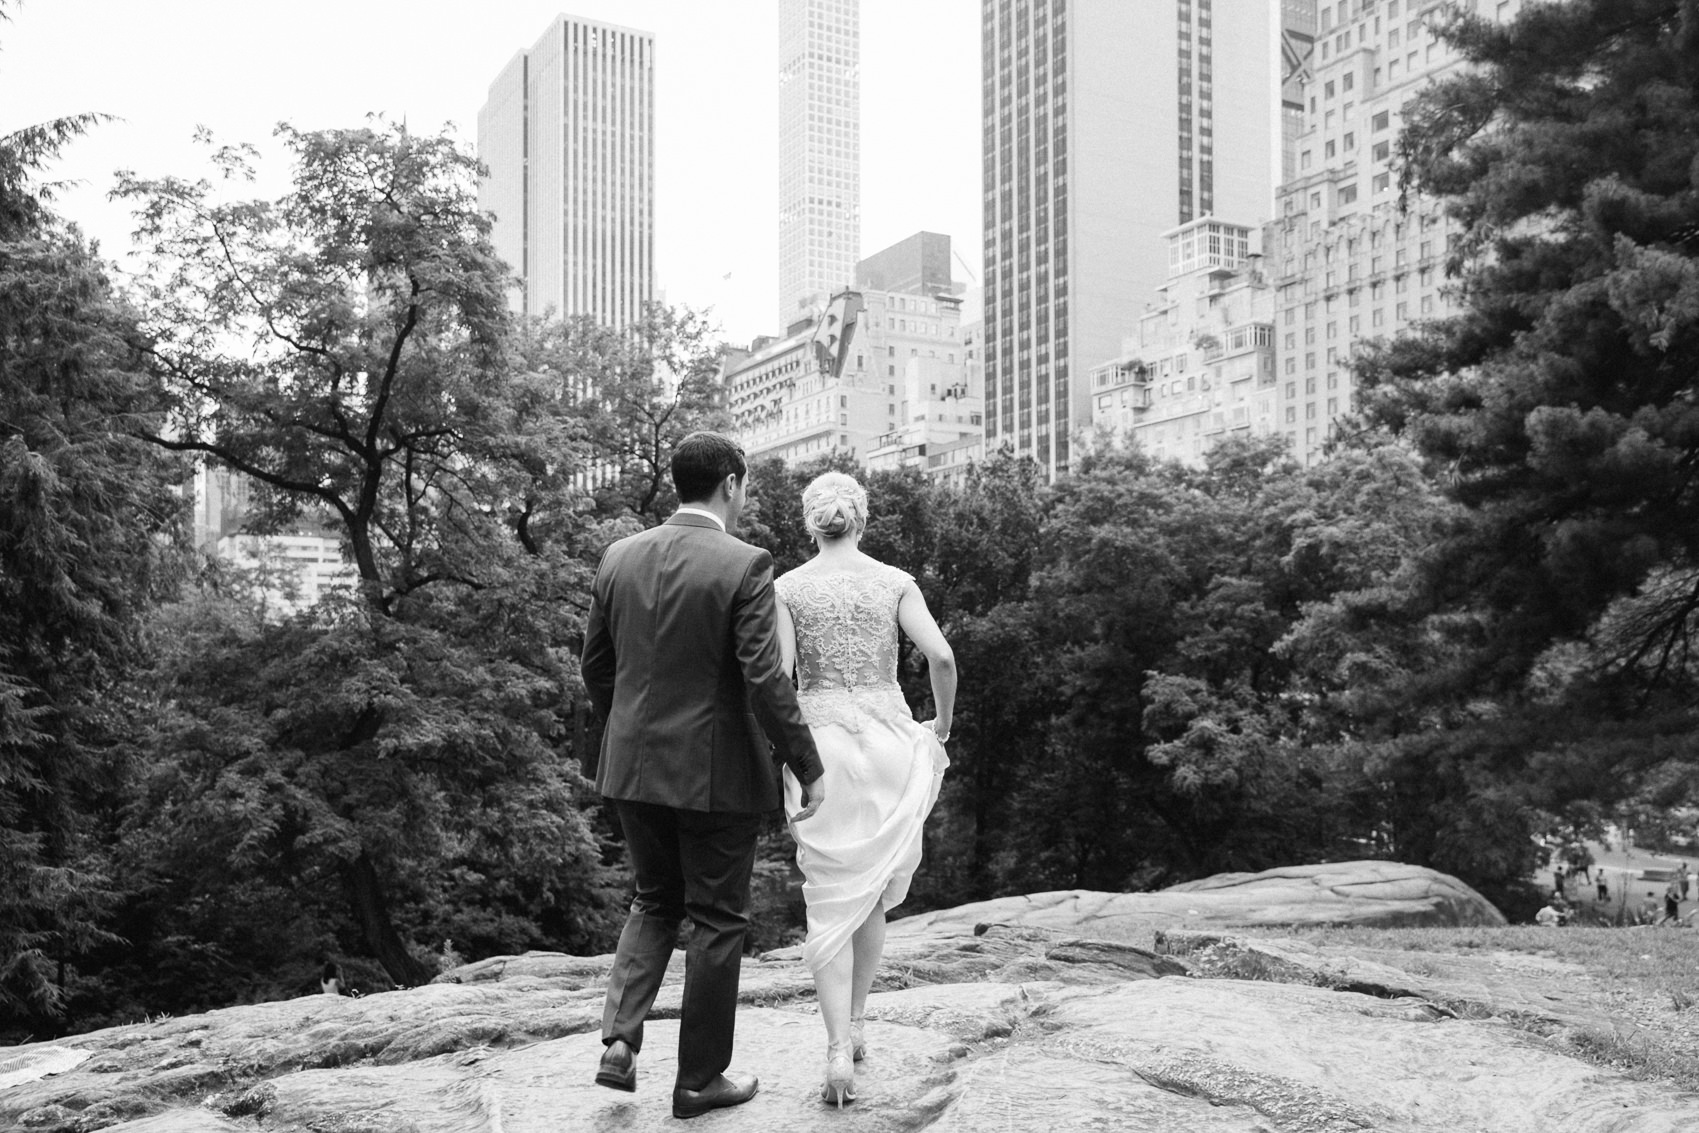 NYC-wedding-photos-by-Tanya-Isaeva-34.jpg